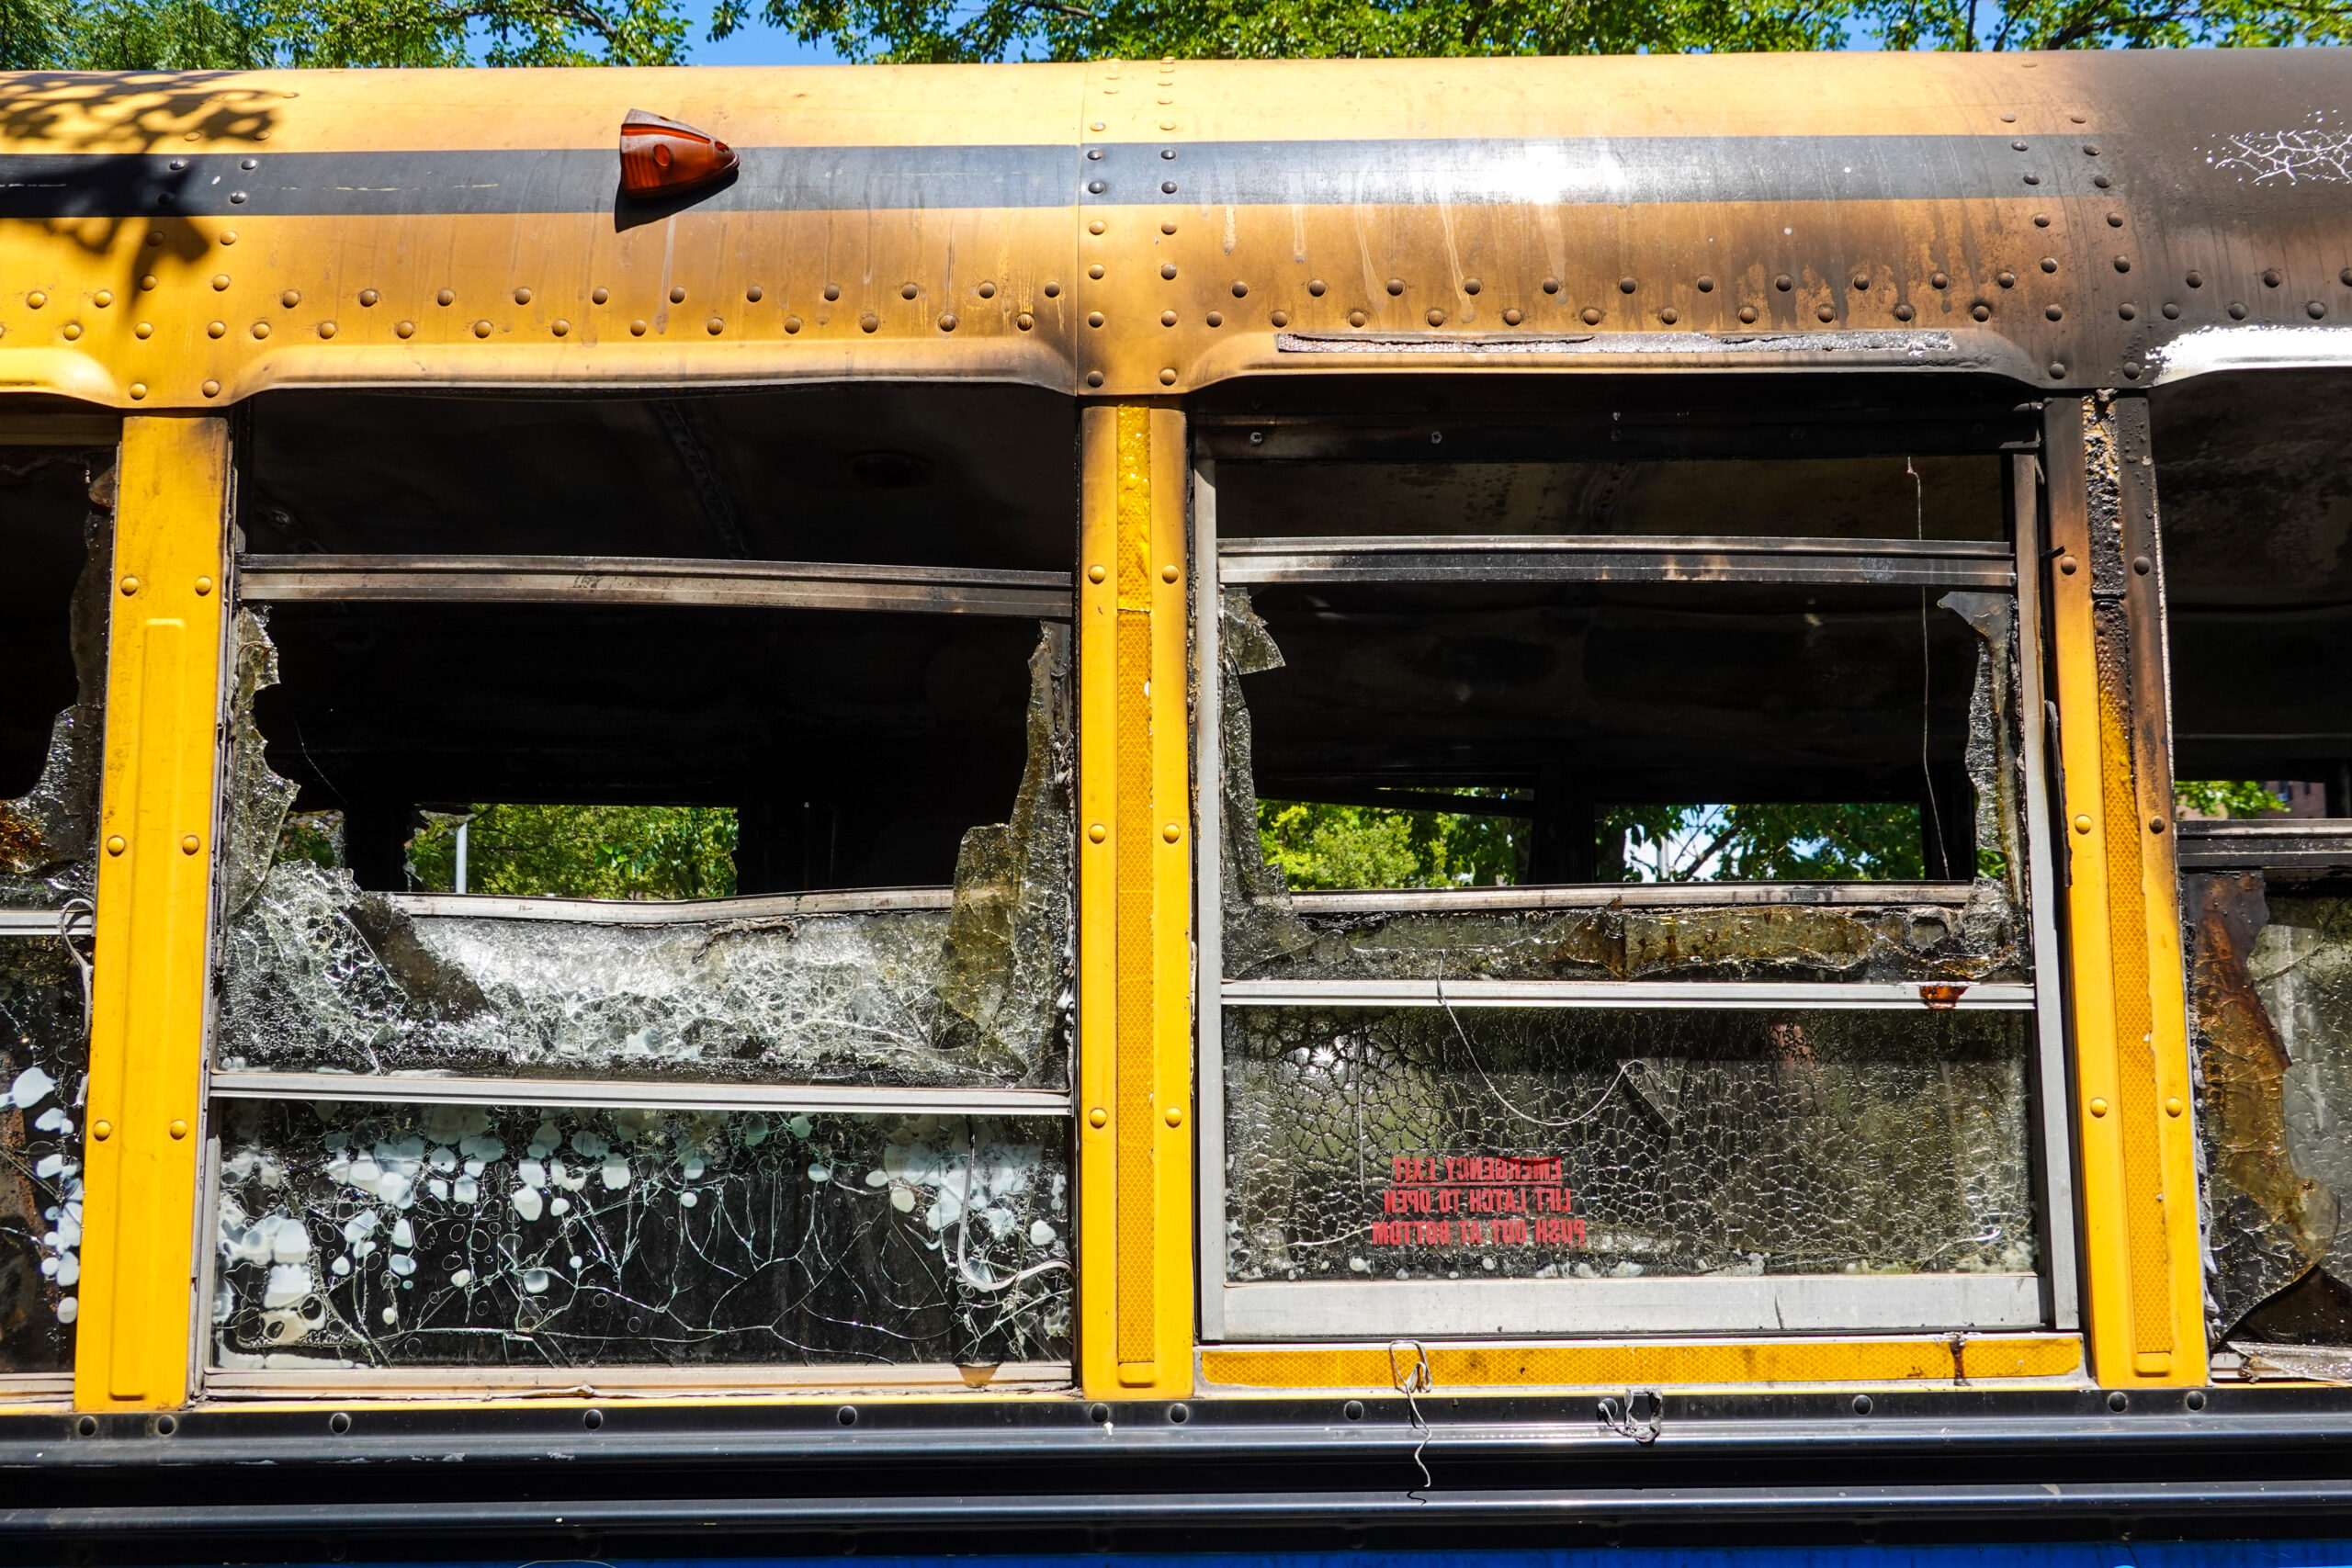 School Bus Fires are an Ever-Present Risk